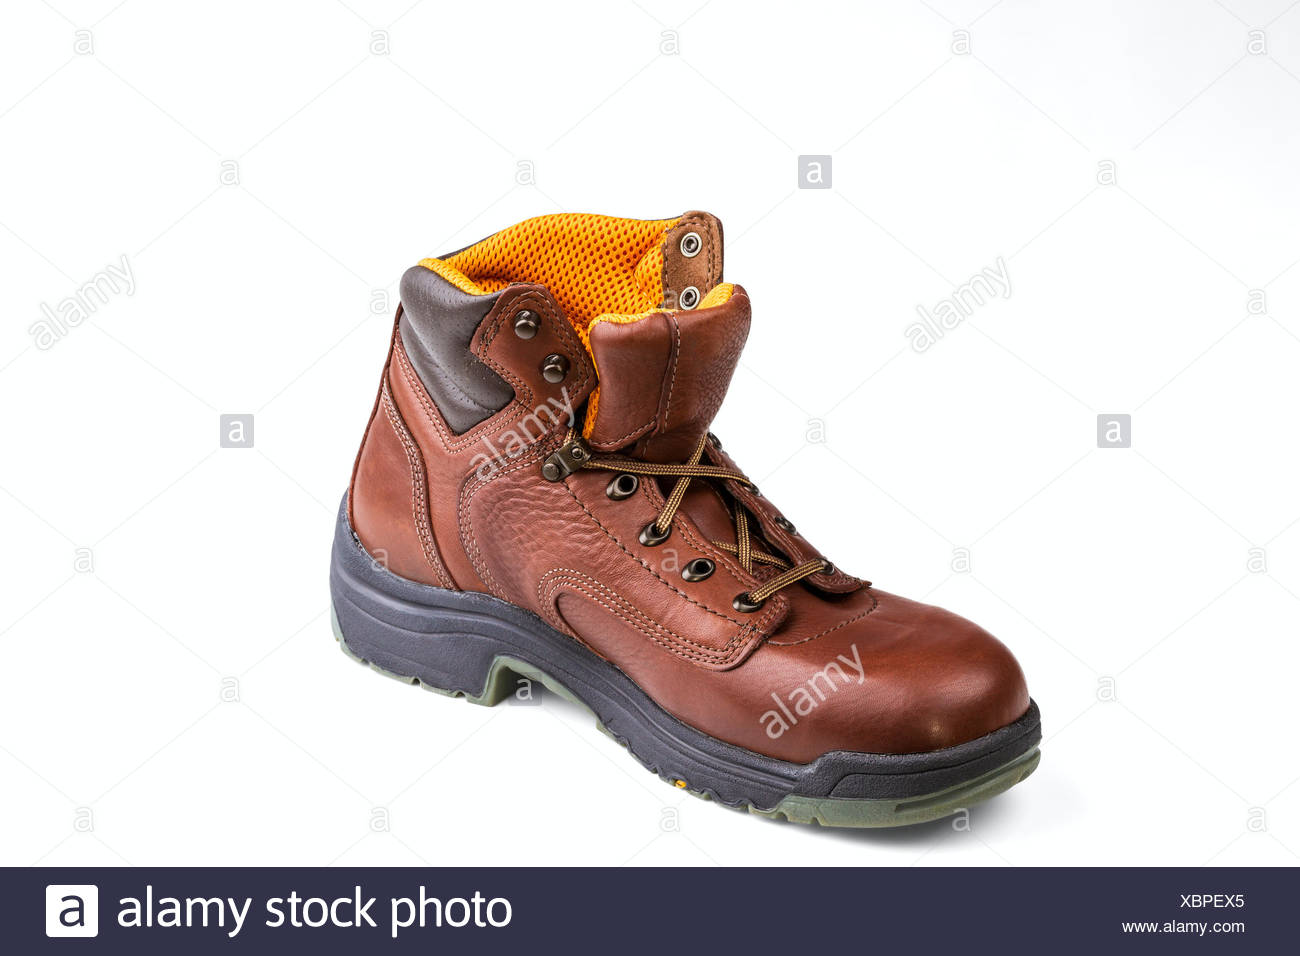 brown men's boot isolated on white background Stock Photo